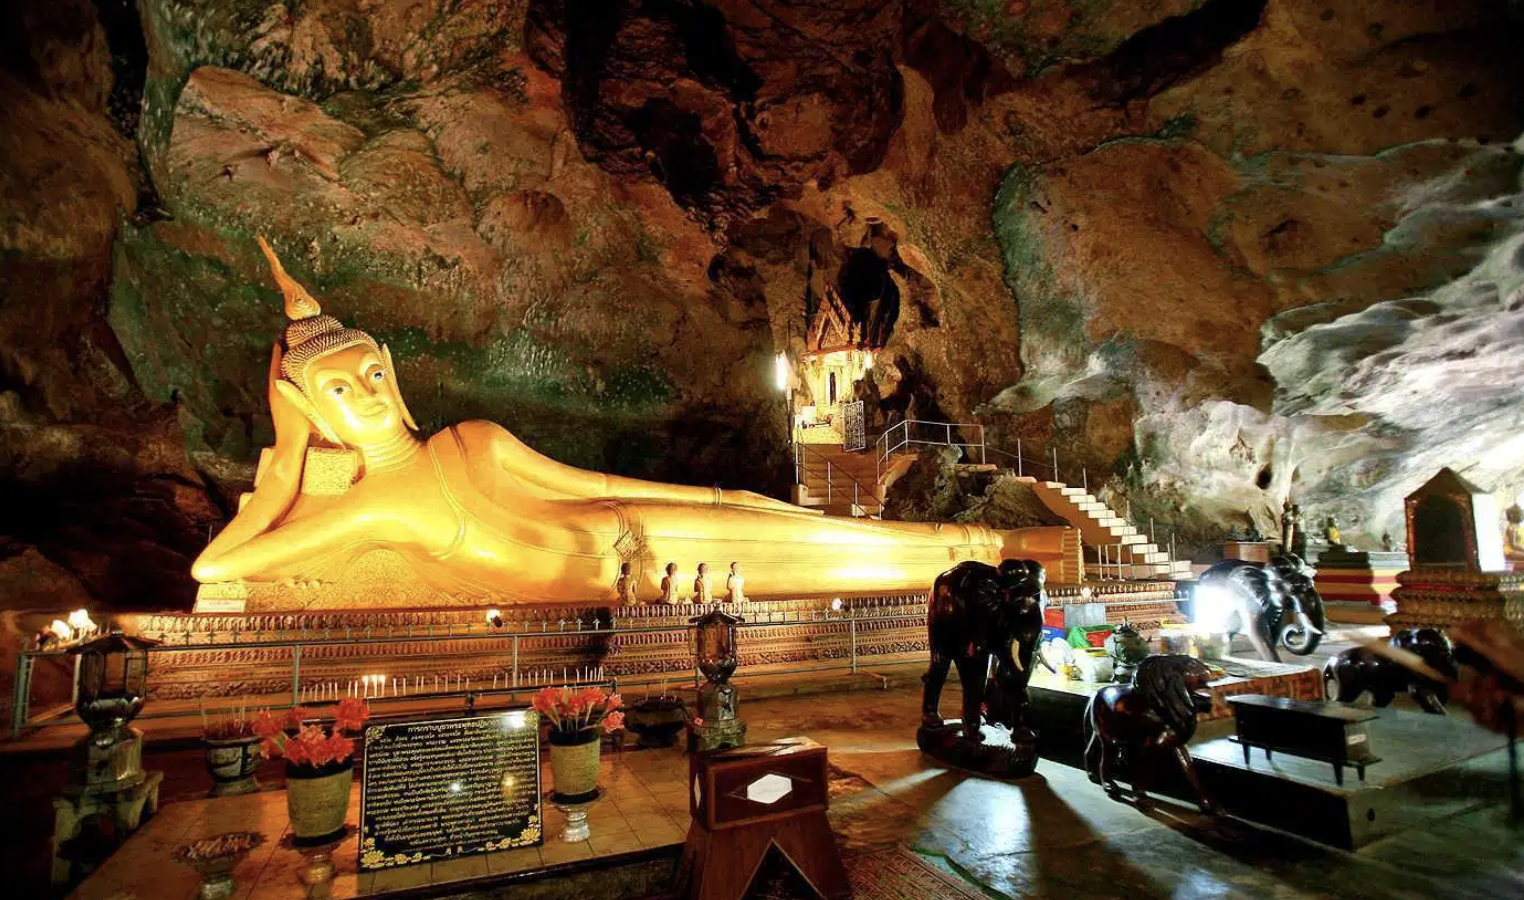 The Cave of the Reclining Buddha